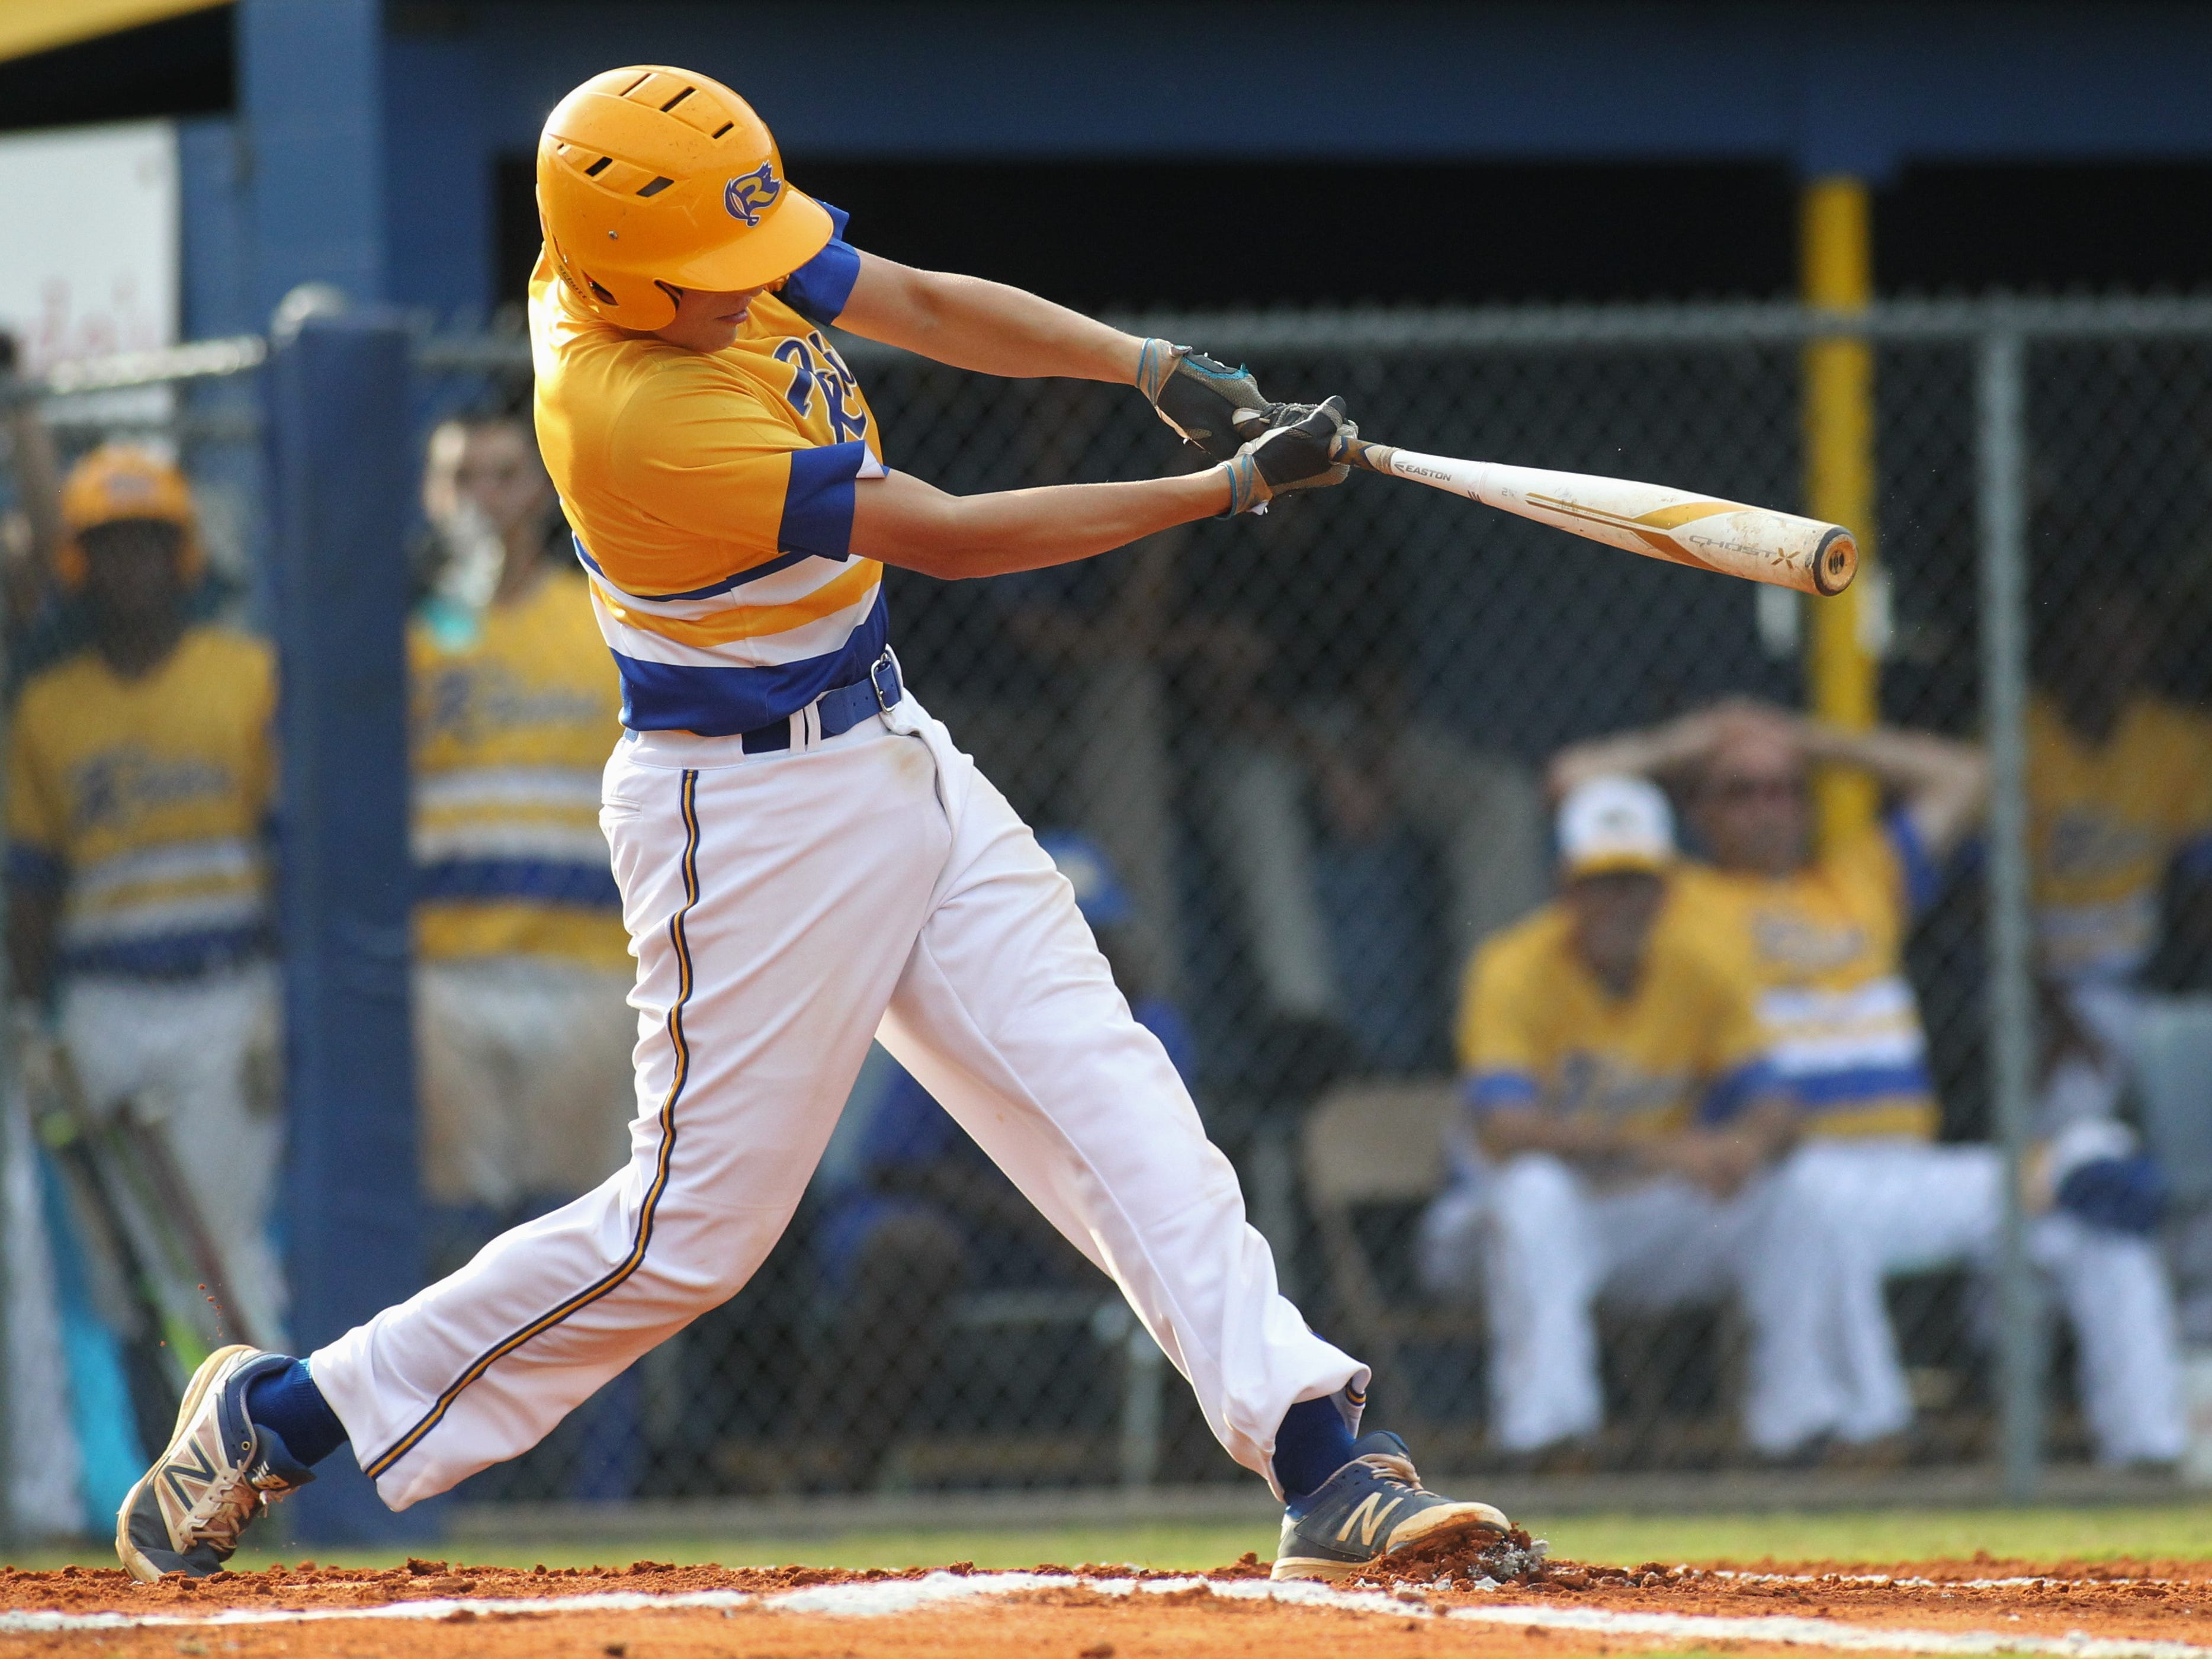 Rickards junior Nevan Figueroa laces a hit as Rickards beat Gadsden County 18-0 in three innings on Friday, April 12, 2019.